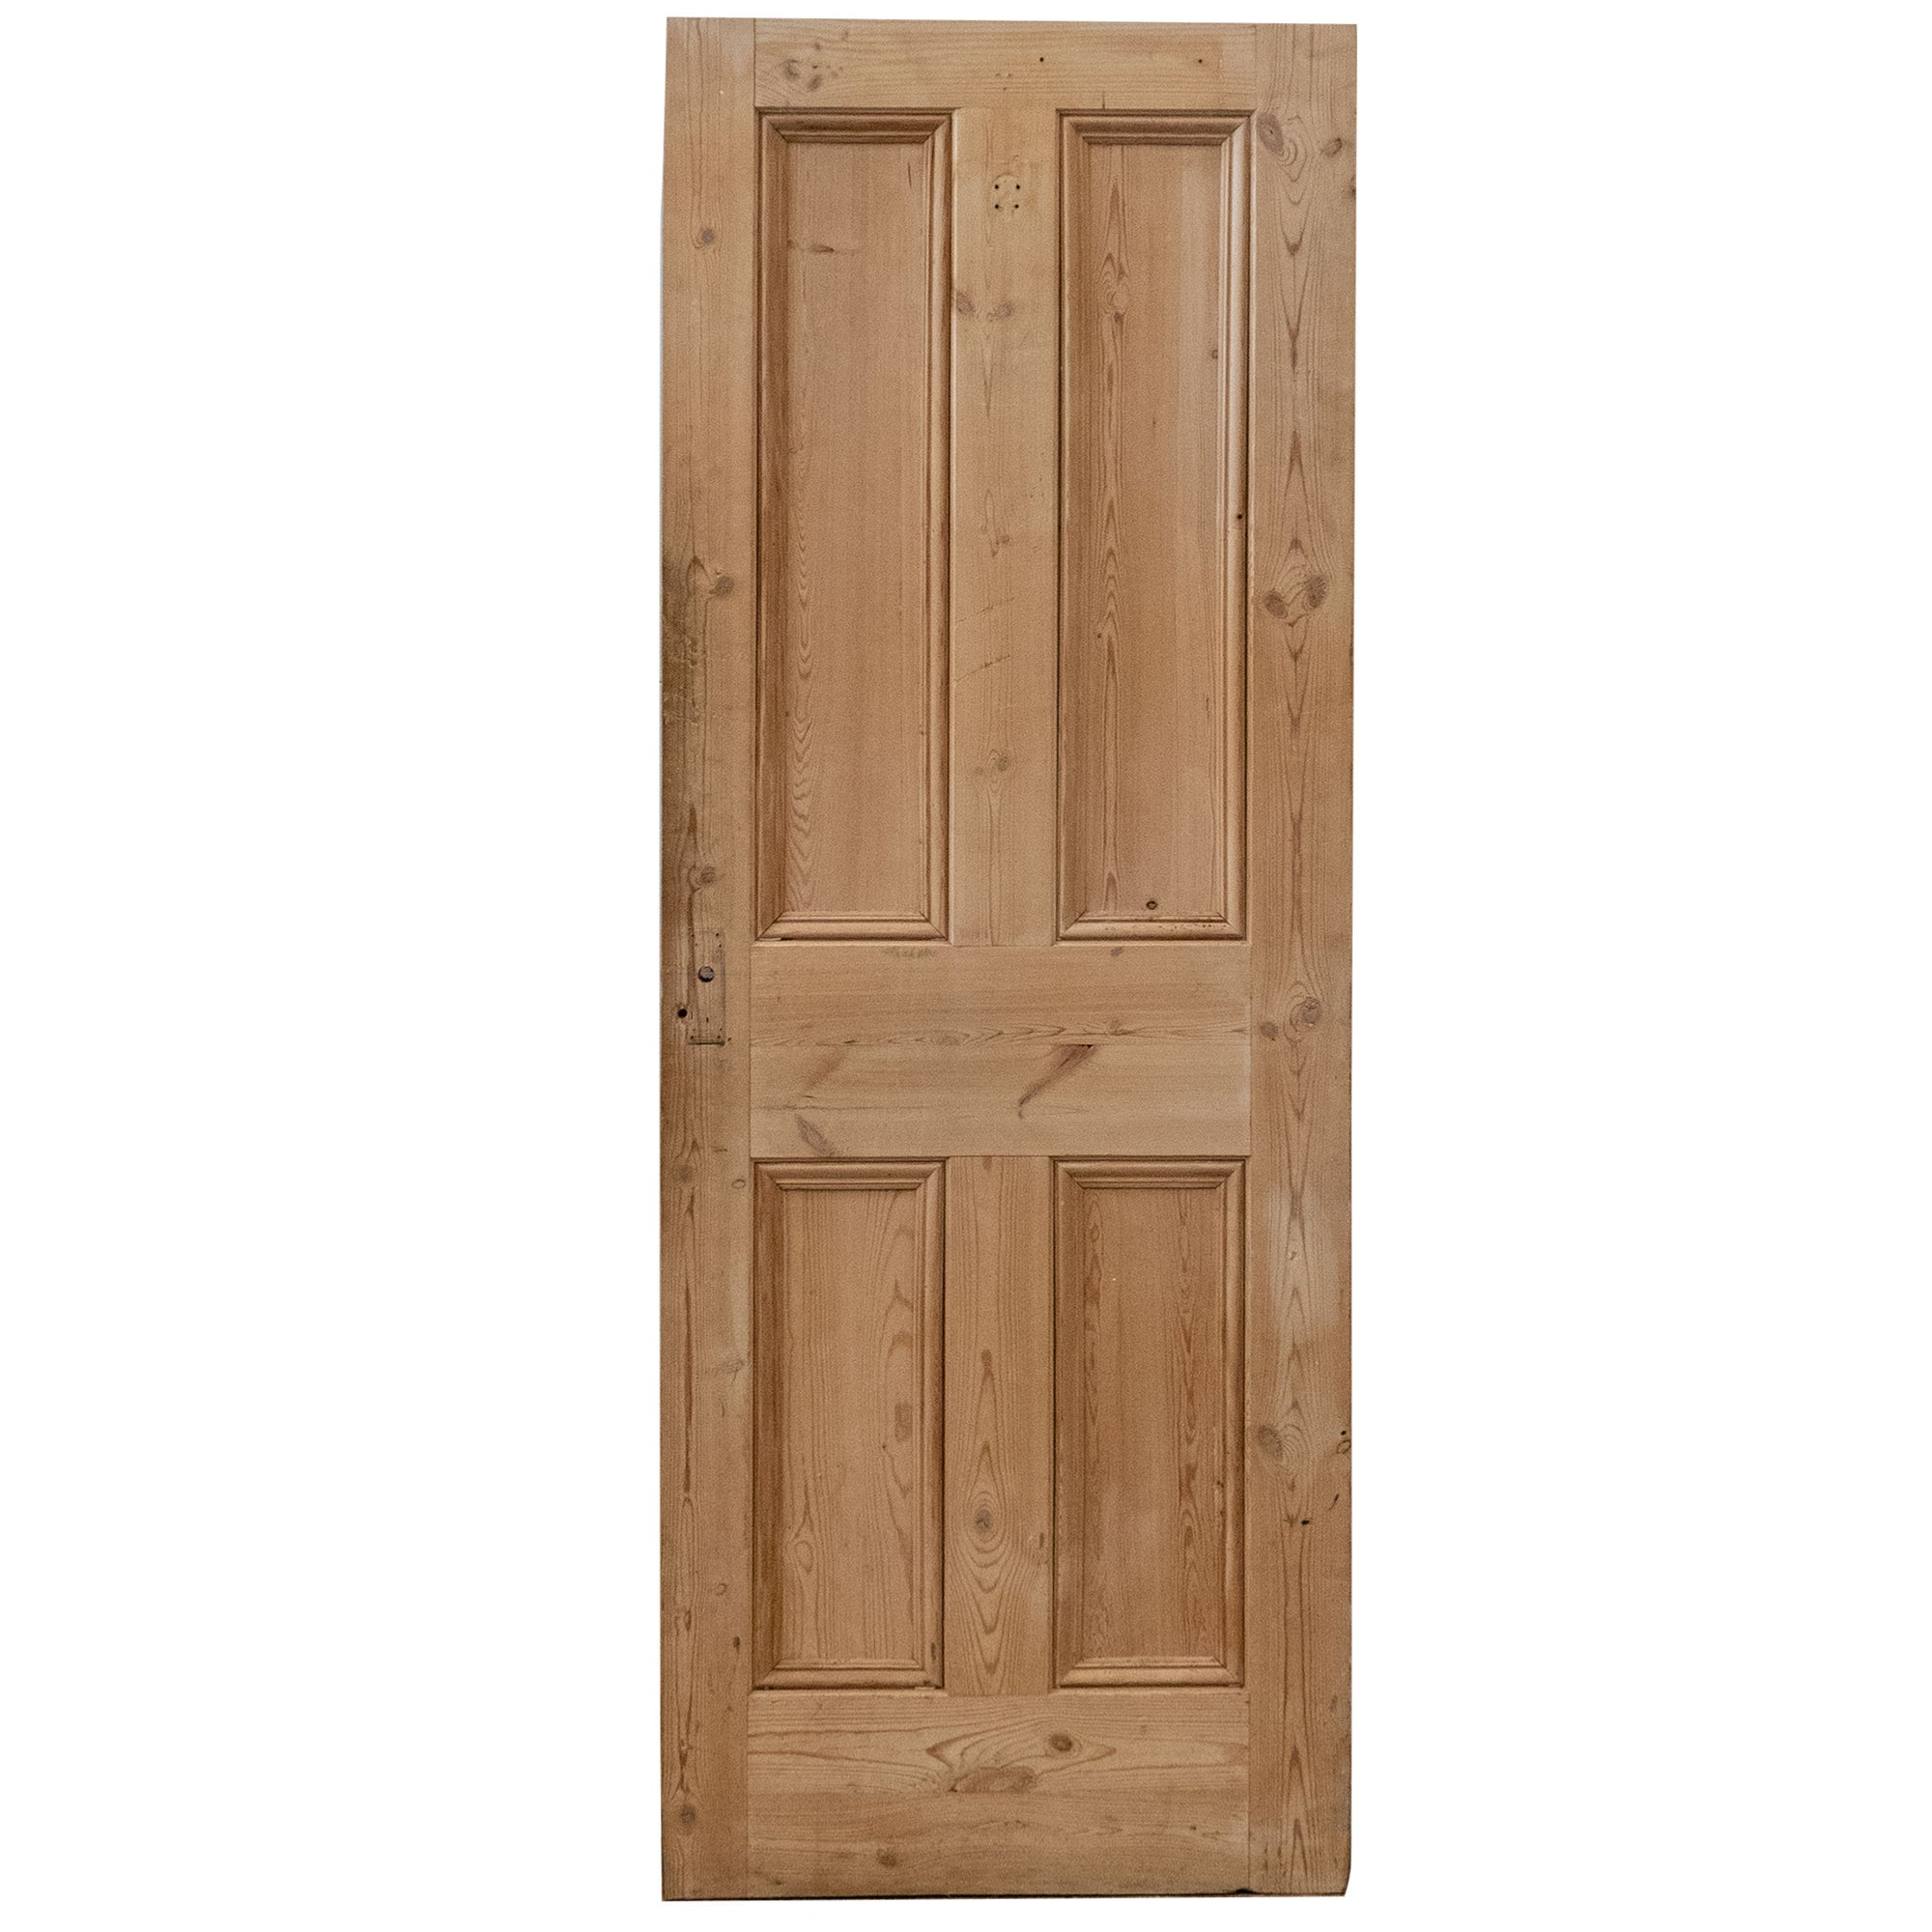 Victorian 4 Panel Door - 191cm x 70cm - architectural-forum